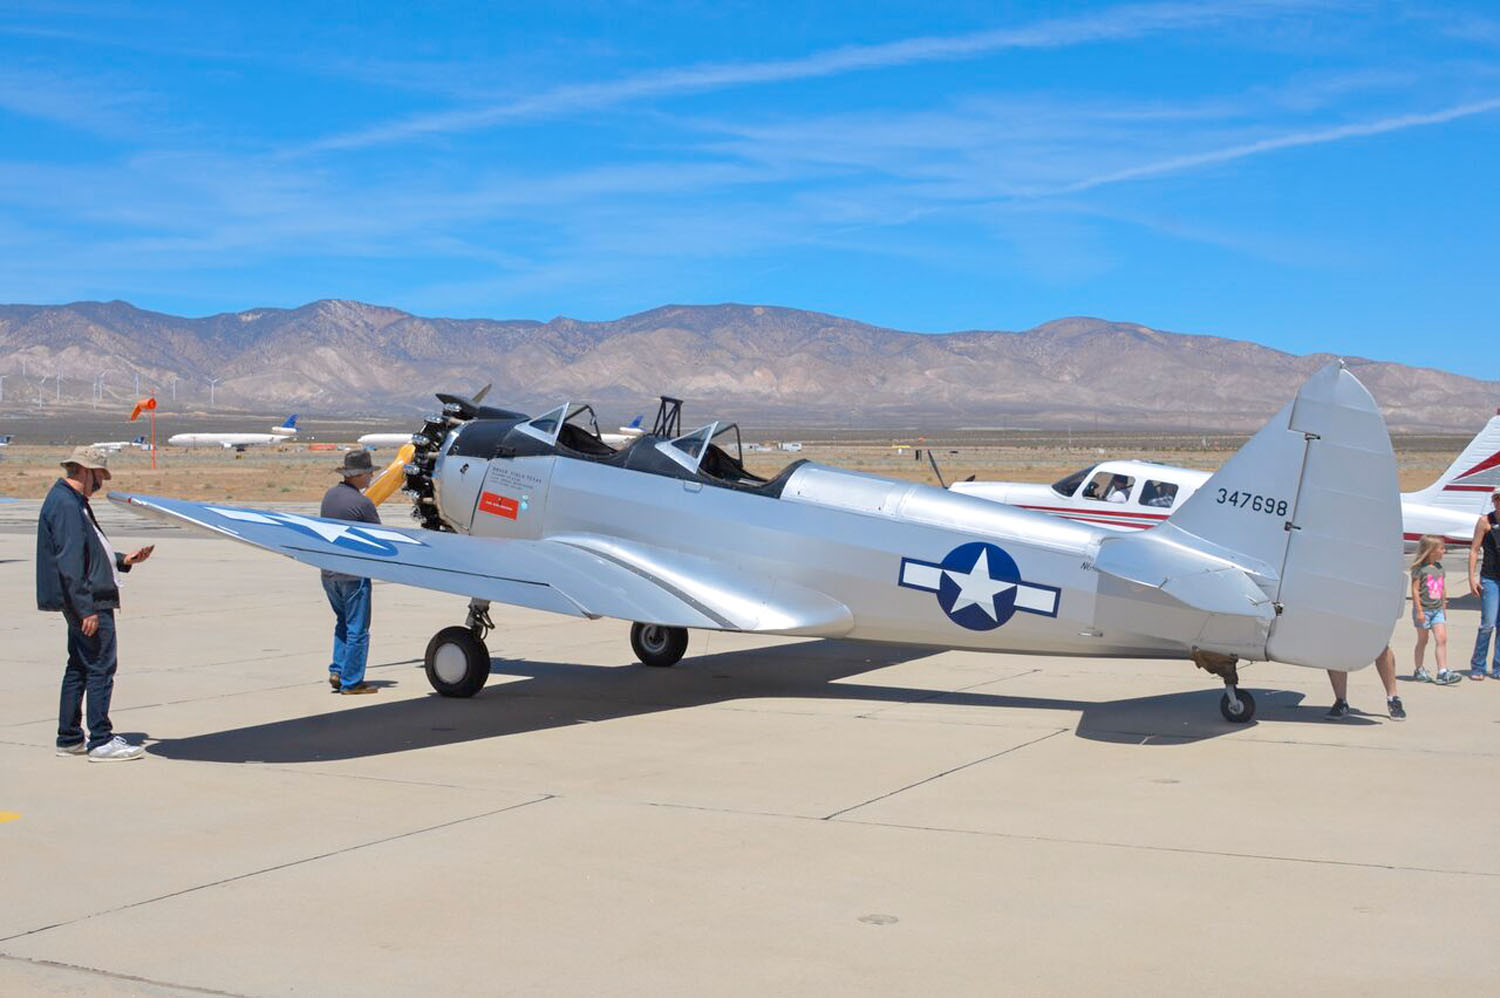 A lot of people were wondering just which WWII primary trainer this was. It's a PT-23 owned by Todd Schultz. A Fairchild product, the PT-23 employed the ubiquitous 220 hp Continental radial. Imagine getting your first instruction in an open cockpit?